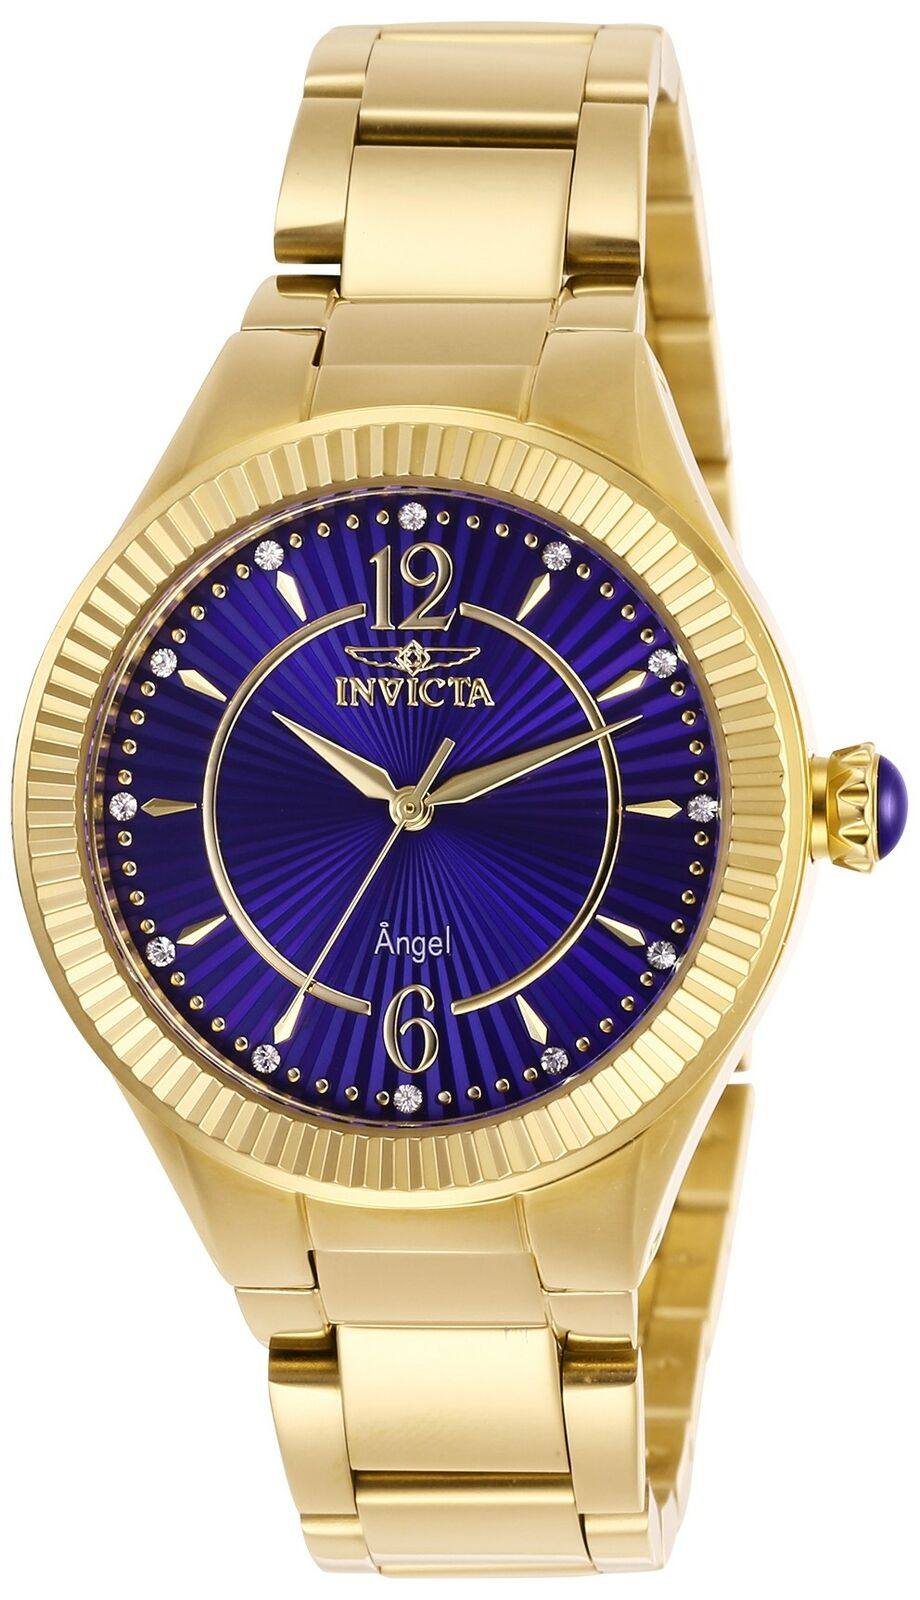 Invicta Women's Angel 28281 35mm Blue Dial Stainless Steel Watch